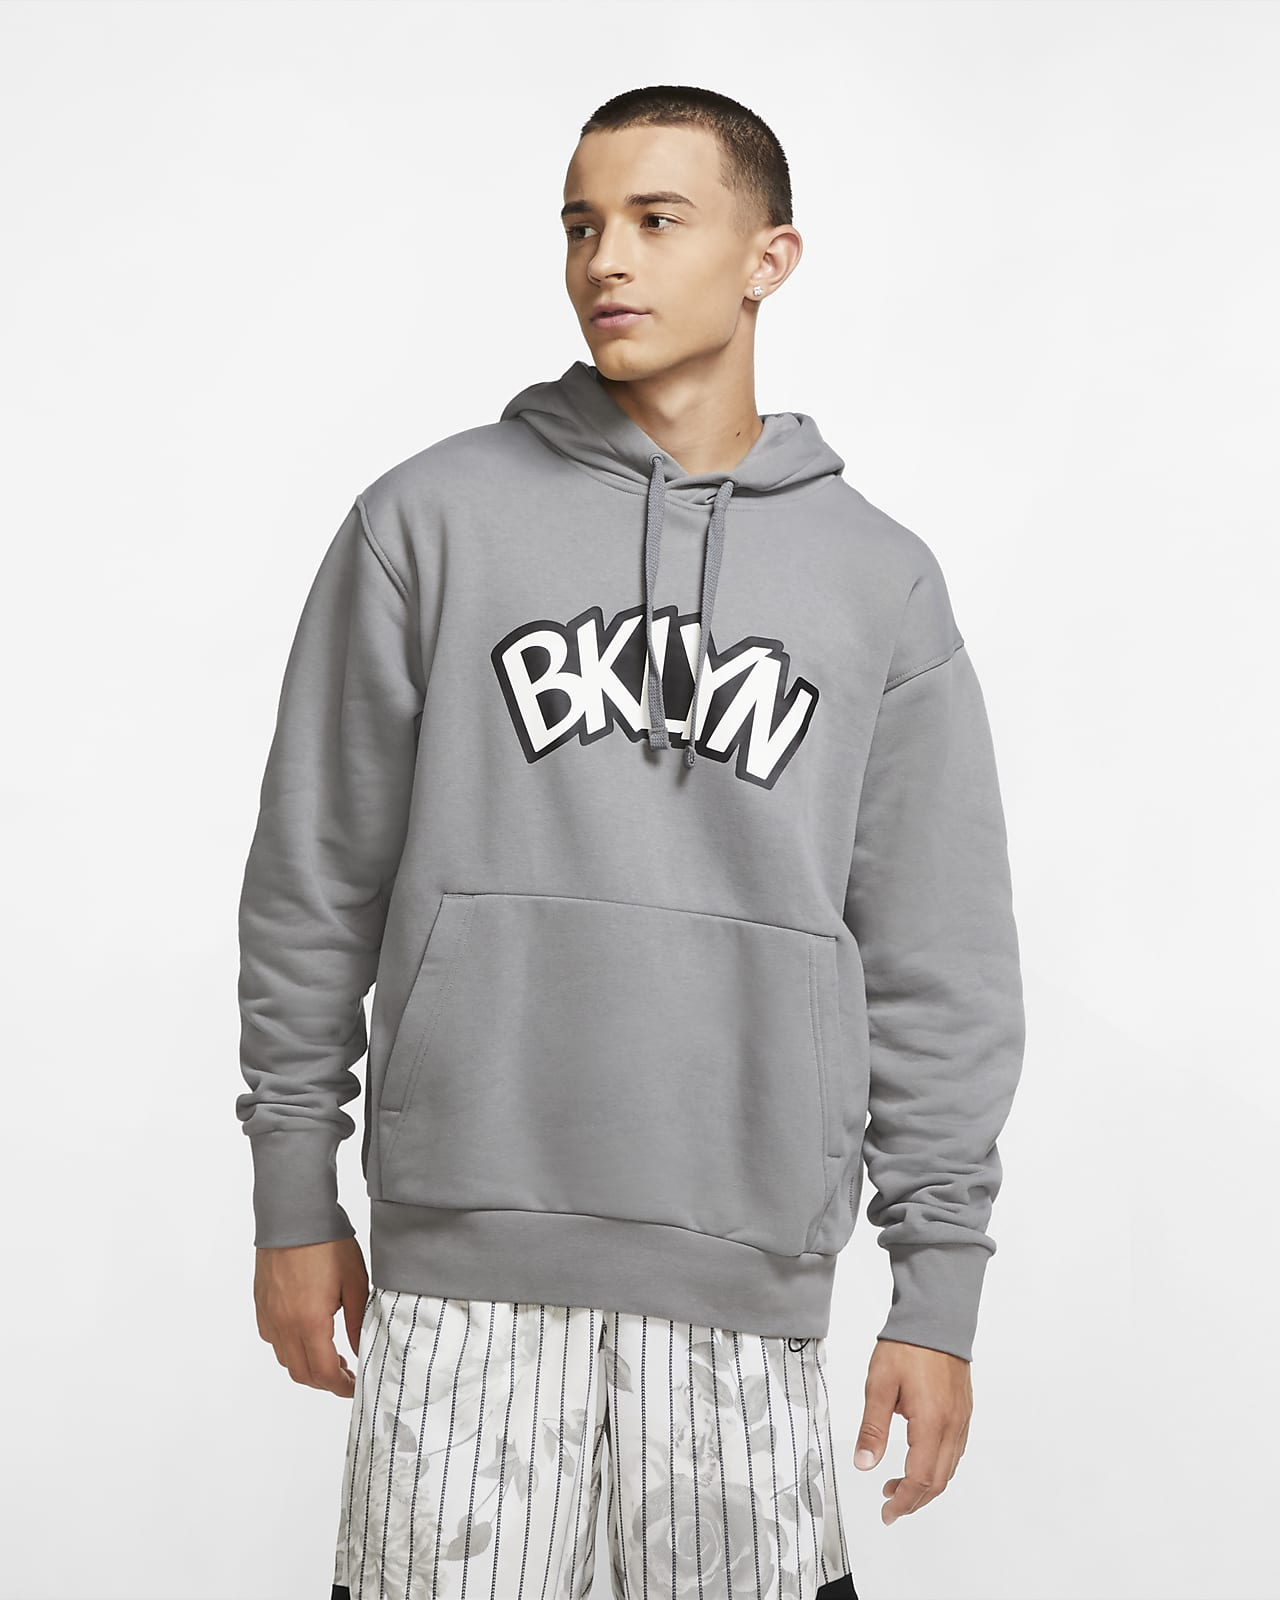 Hoodie NBA Jordan Brooklyn Nets Statement Edition para homem